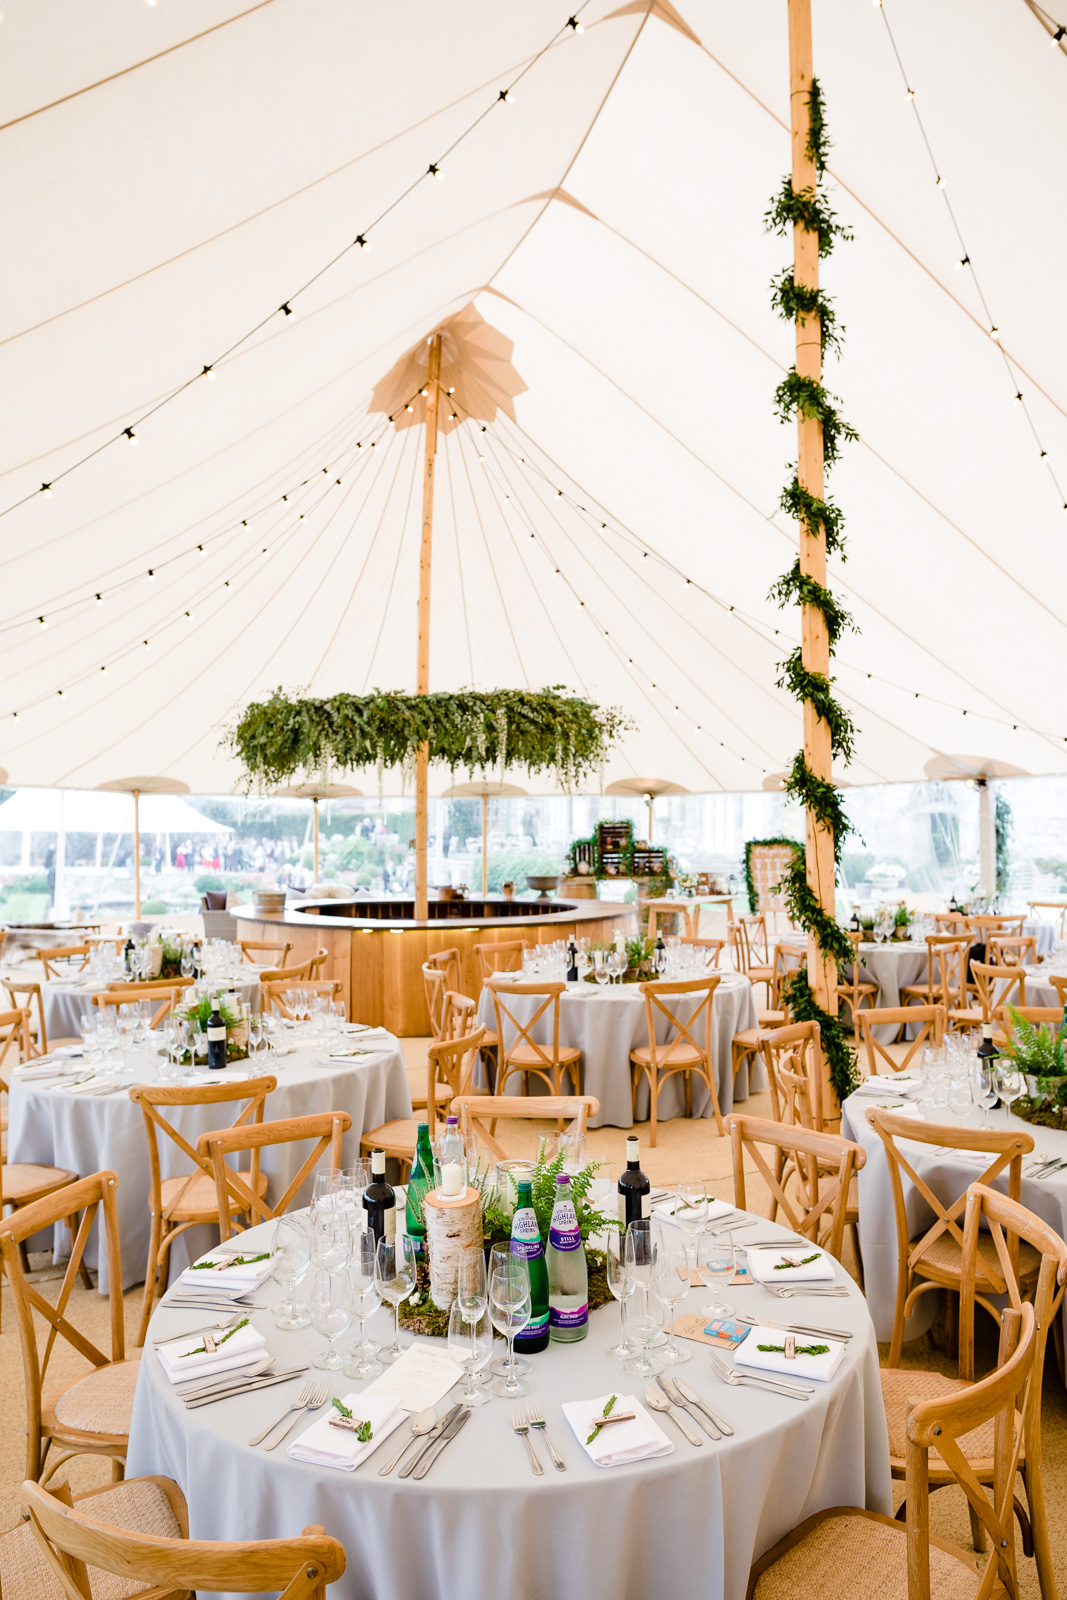 Emily & Ed's PapaKåta Sperry Tent wedding at Buckhurst Park captured by Tony Hart Photography: Floral Hoop by Florist In the Forest